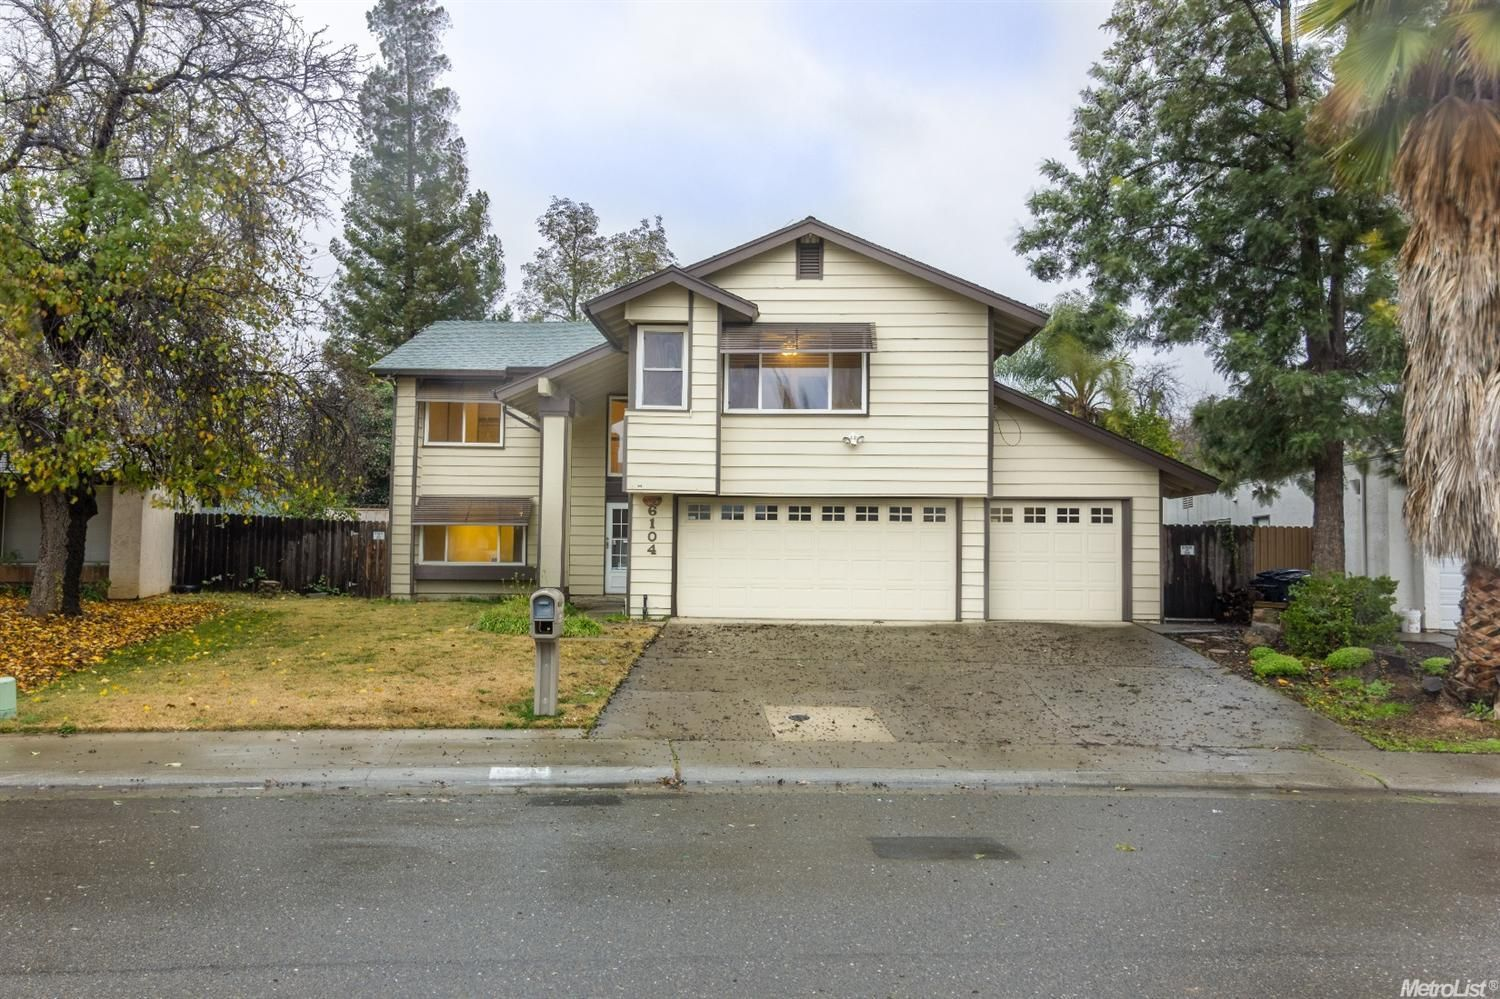 6104 tremain dr citrus heights ca property details